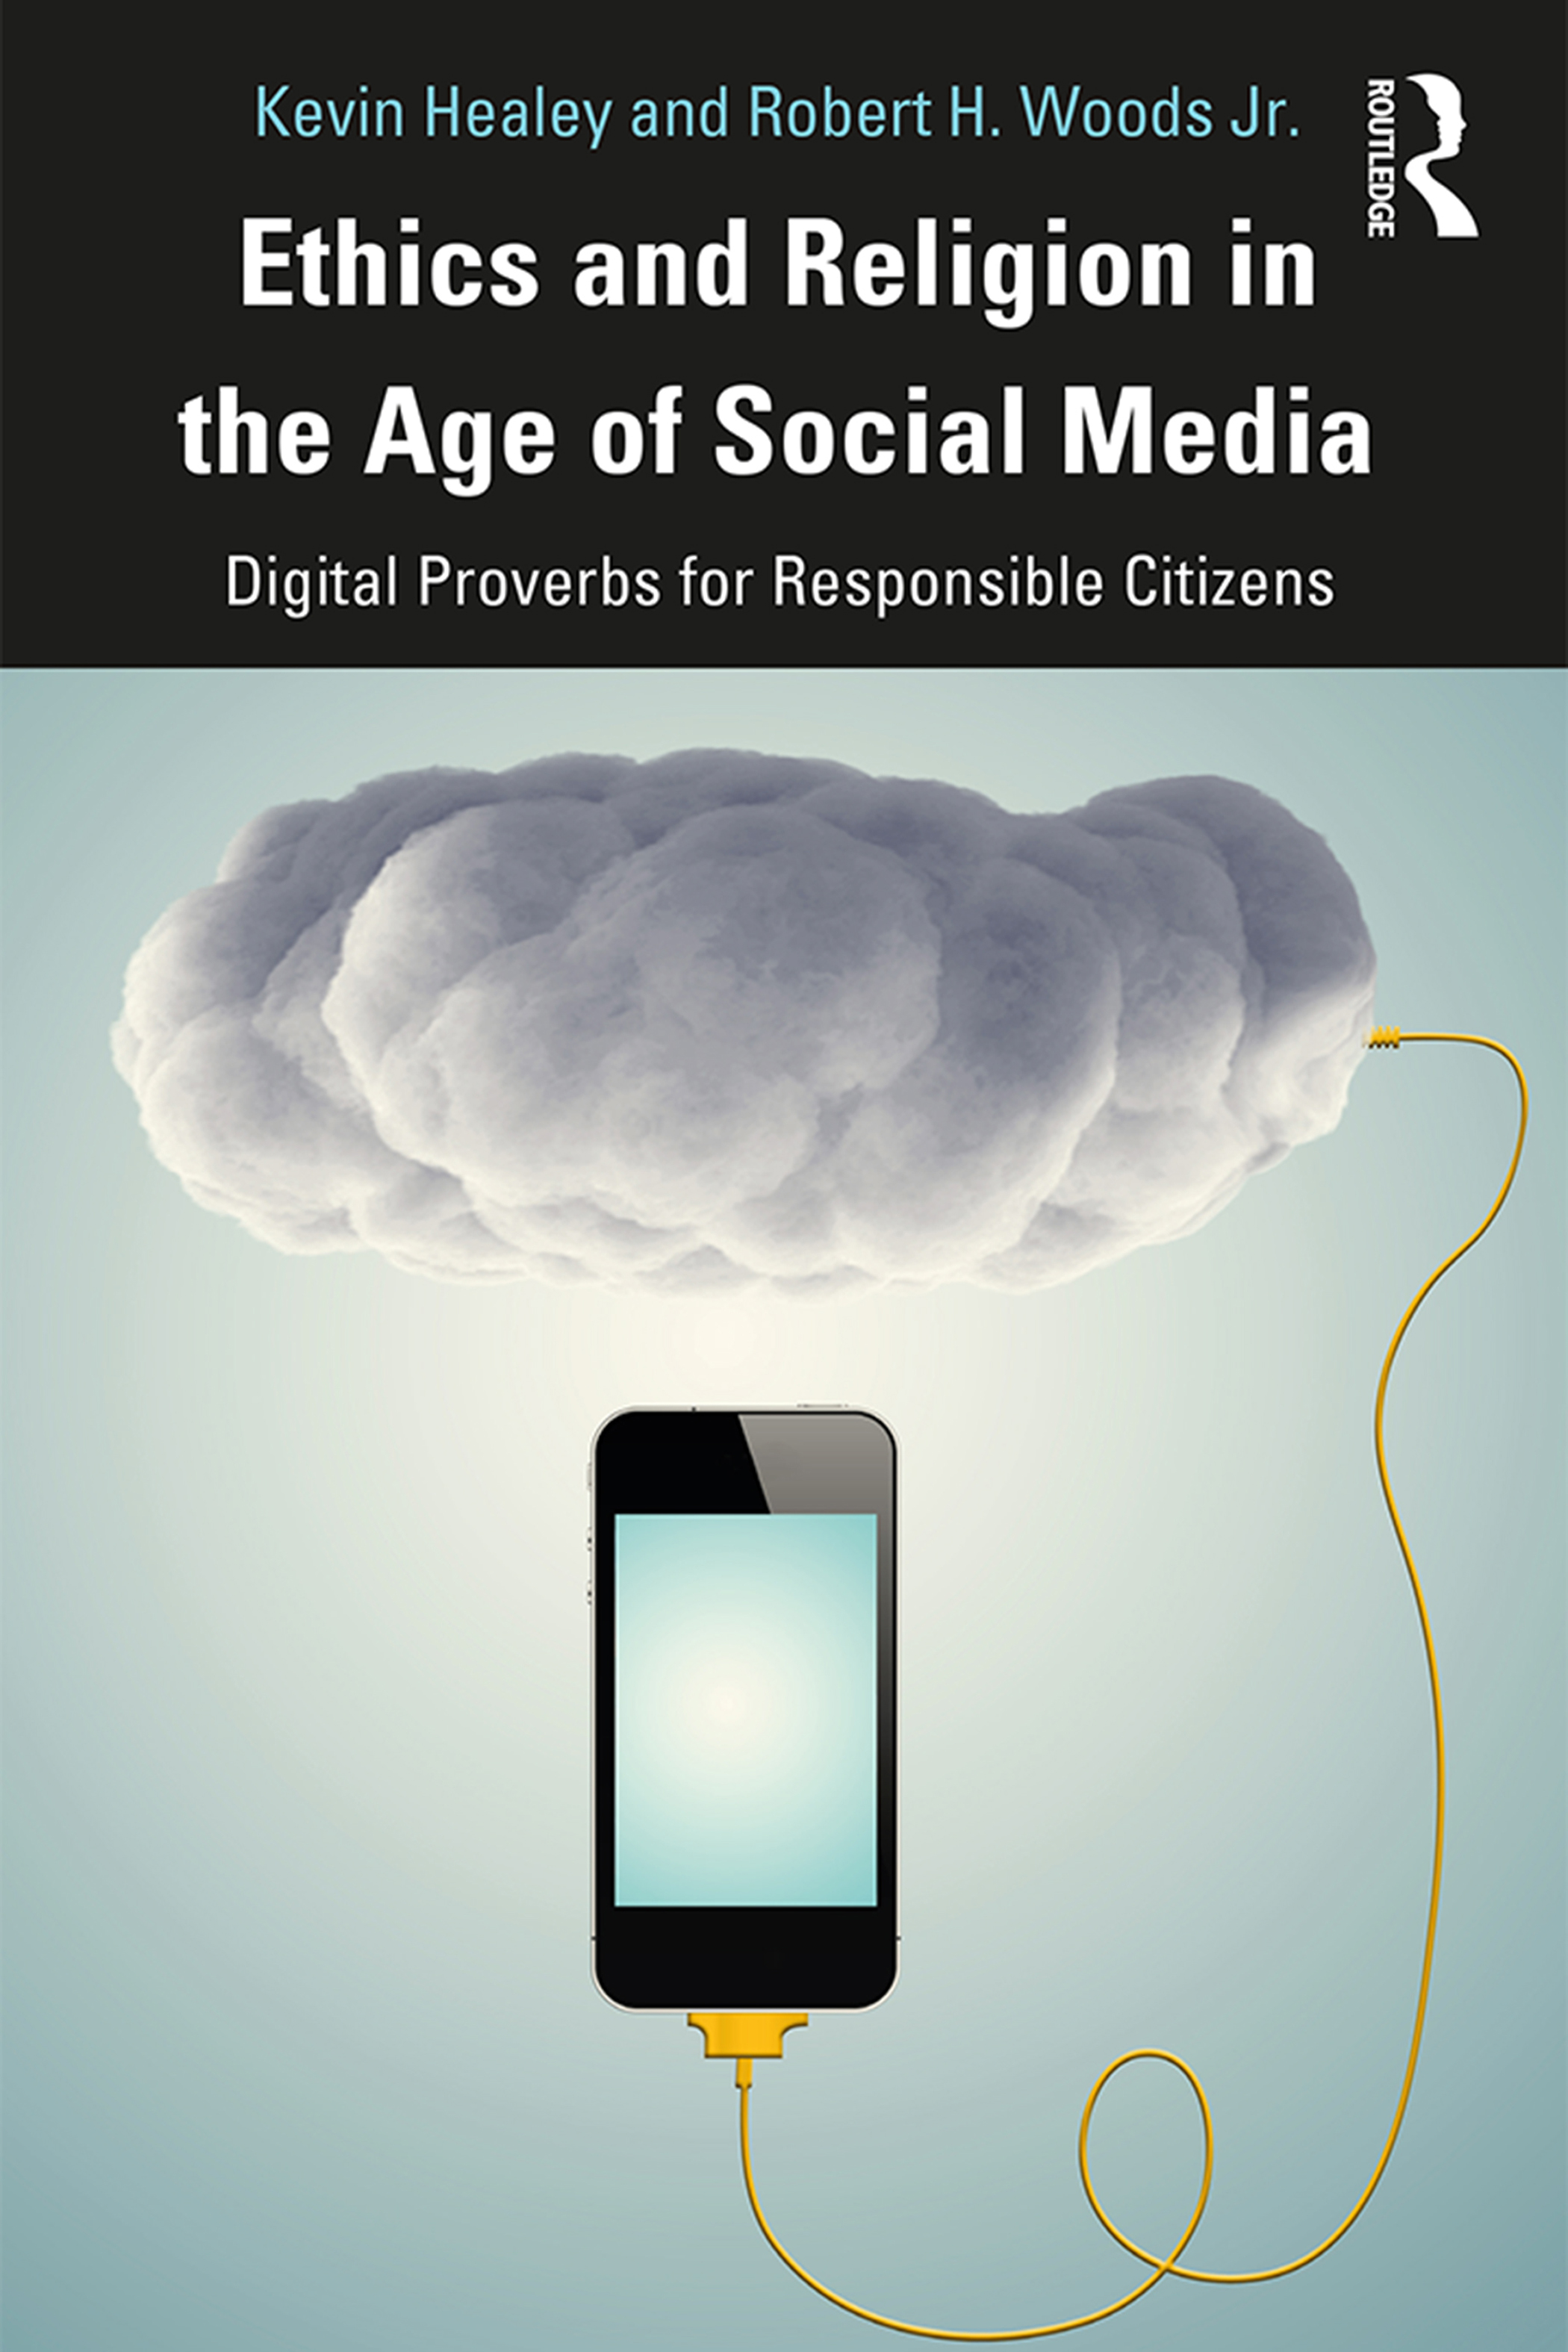 Ethics and Religion in the Age of Social Media: Digital Proverbs for Responsible Citizens book cover